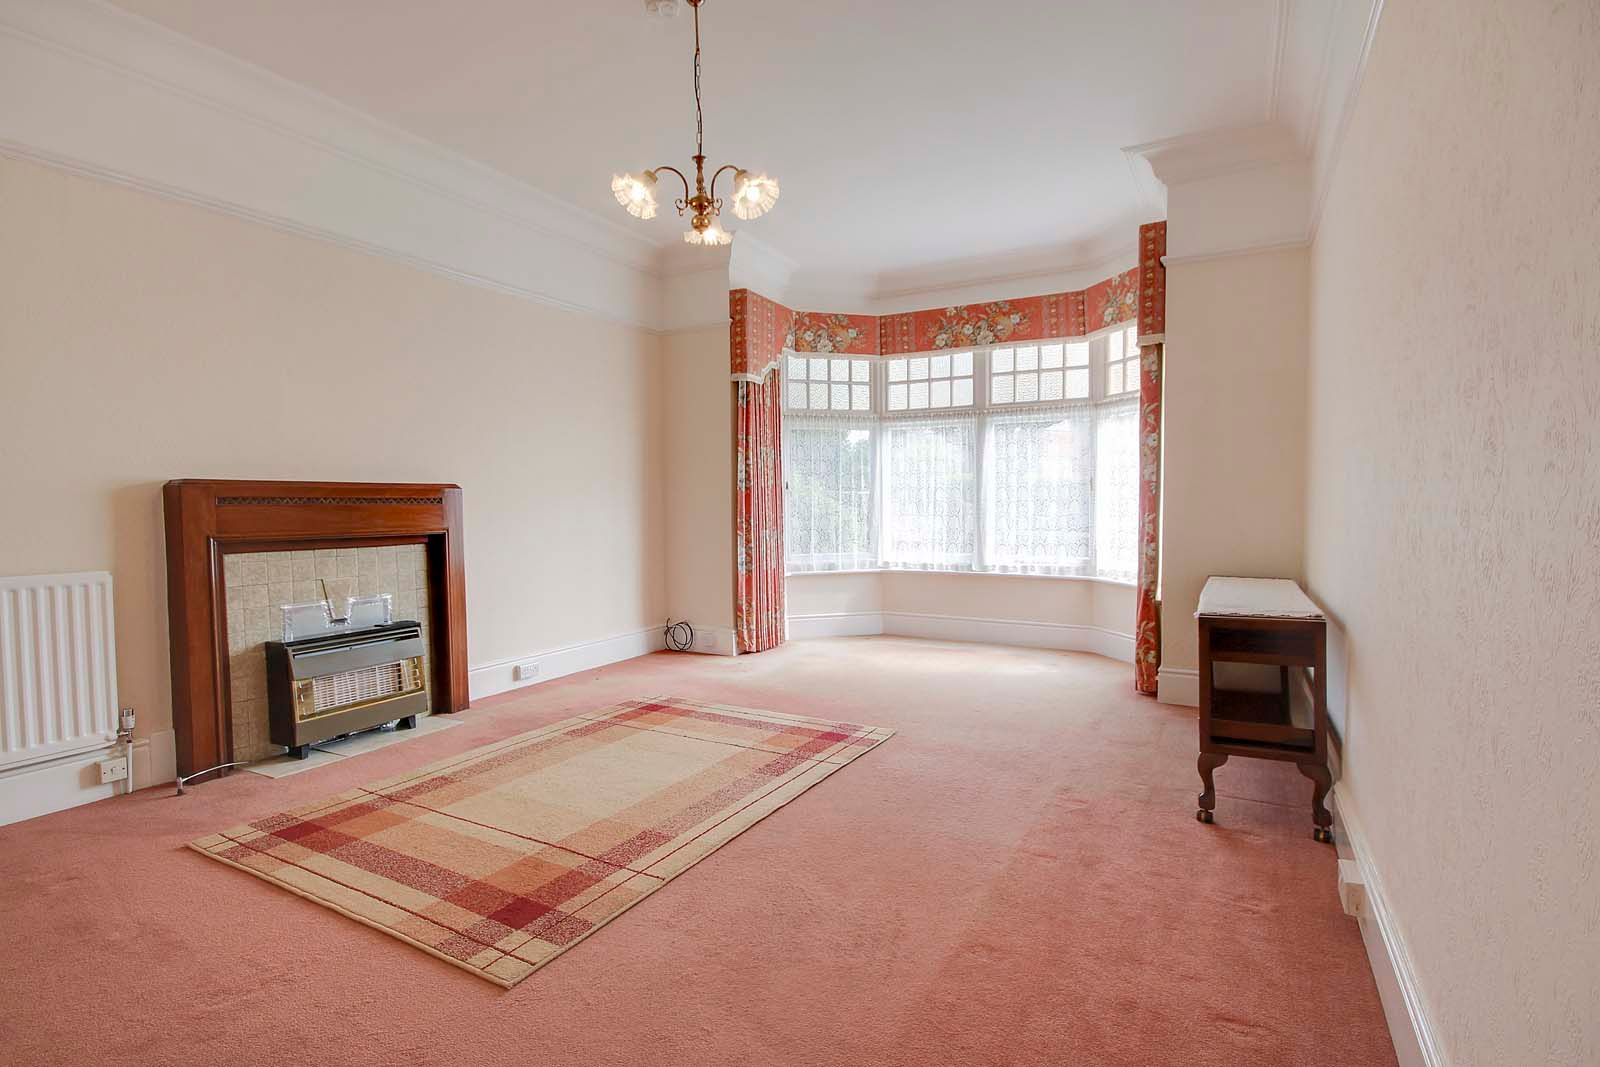 2 bed Apartment to rent in Worthing - Lounge (Property Image 2)